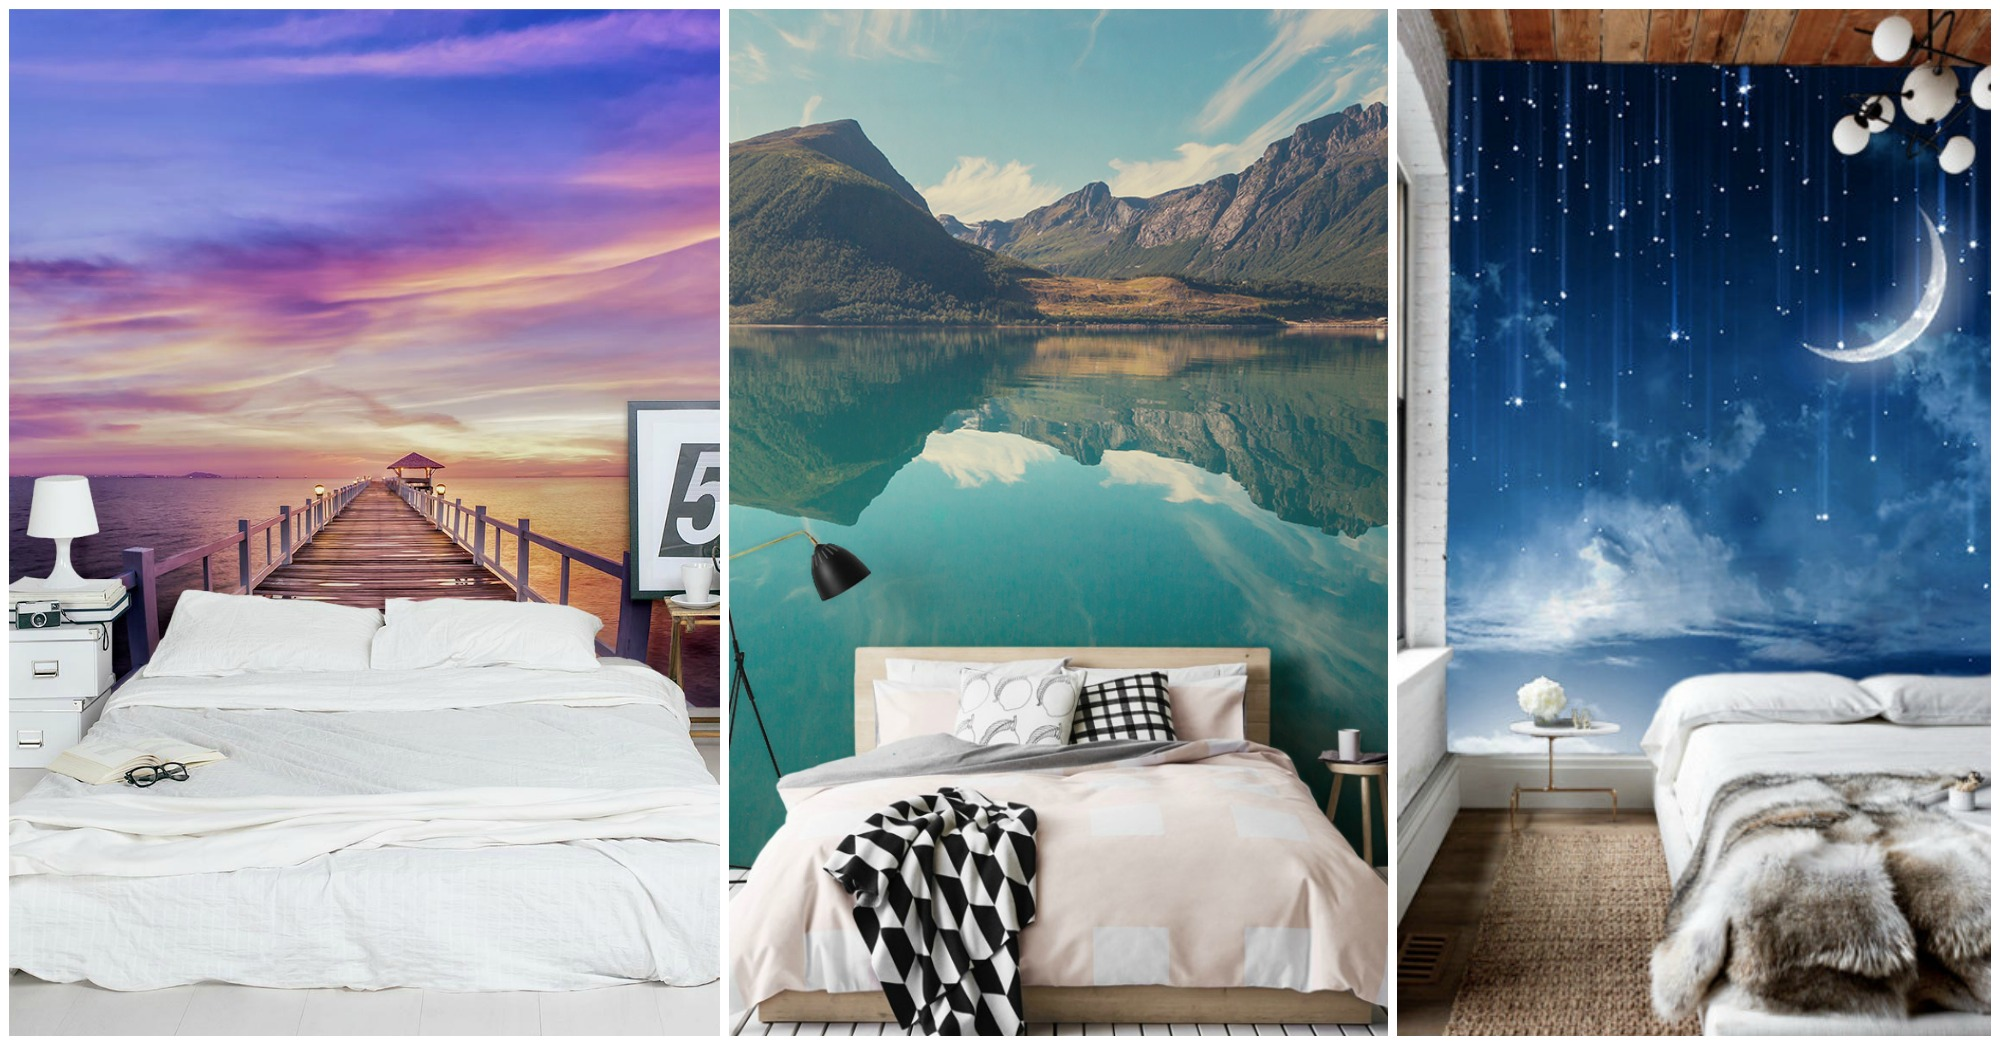 10 Astonishing Wall Murals That Will Make Your Bedroom More Relaxing